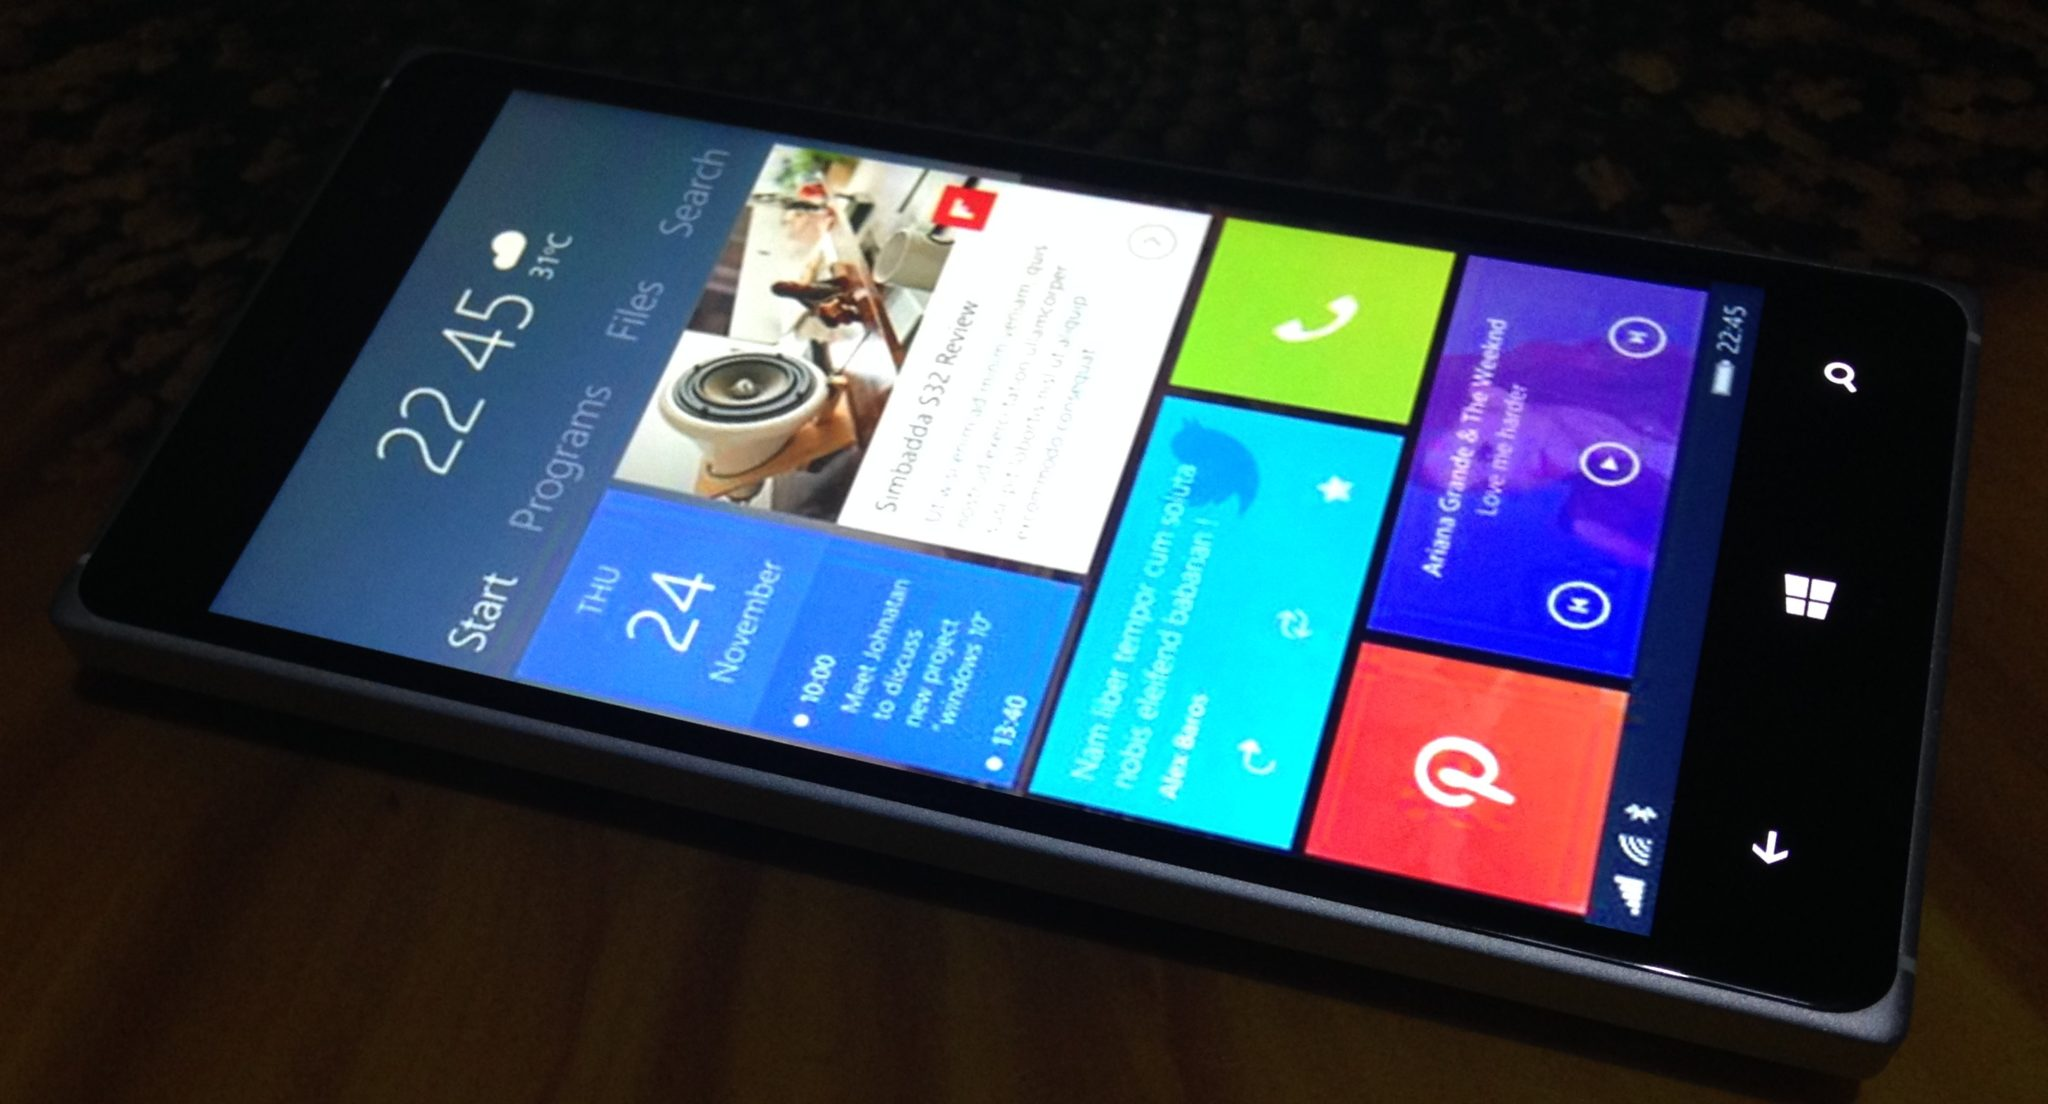 Windows Phone 7.5, 8.0: Microsoft just killed push notification services